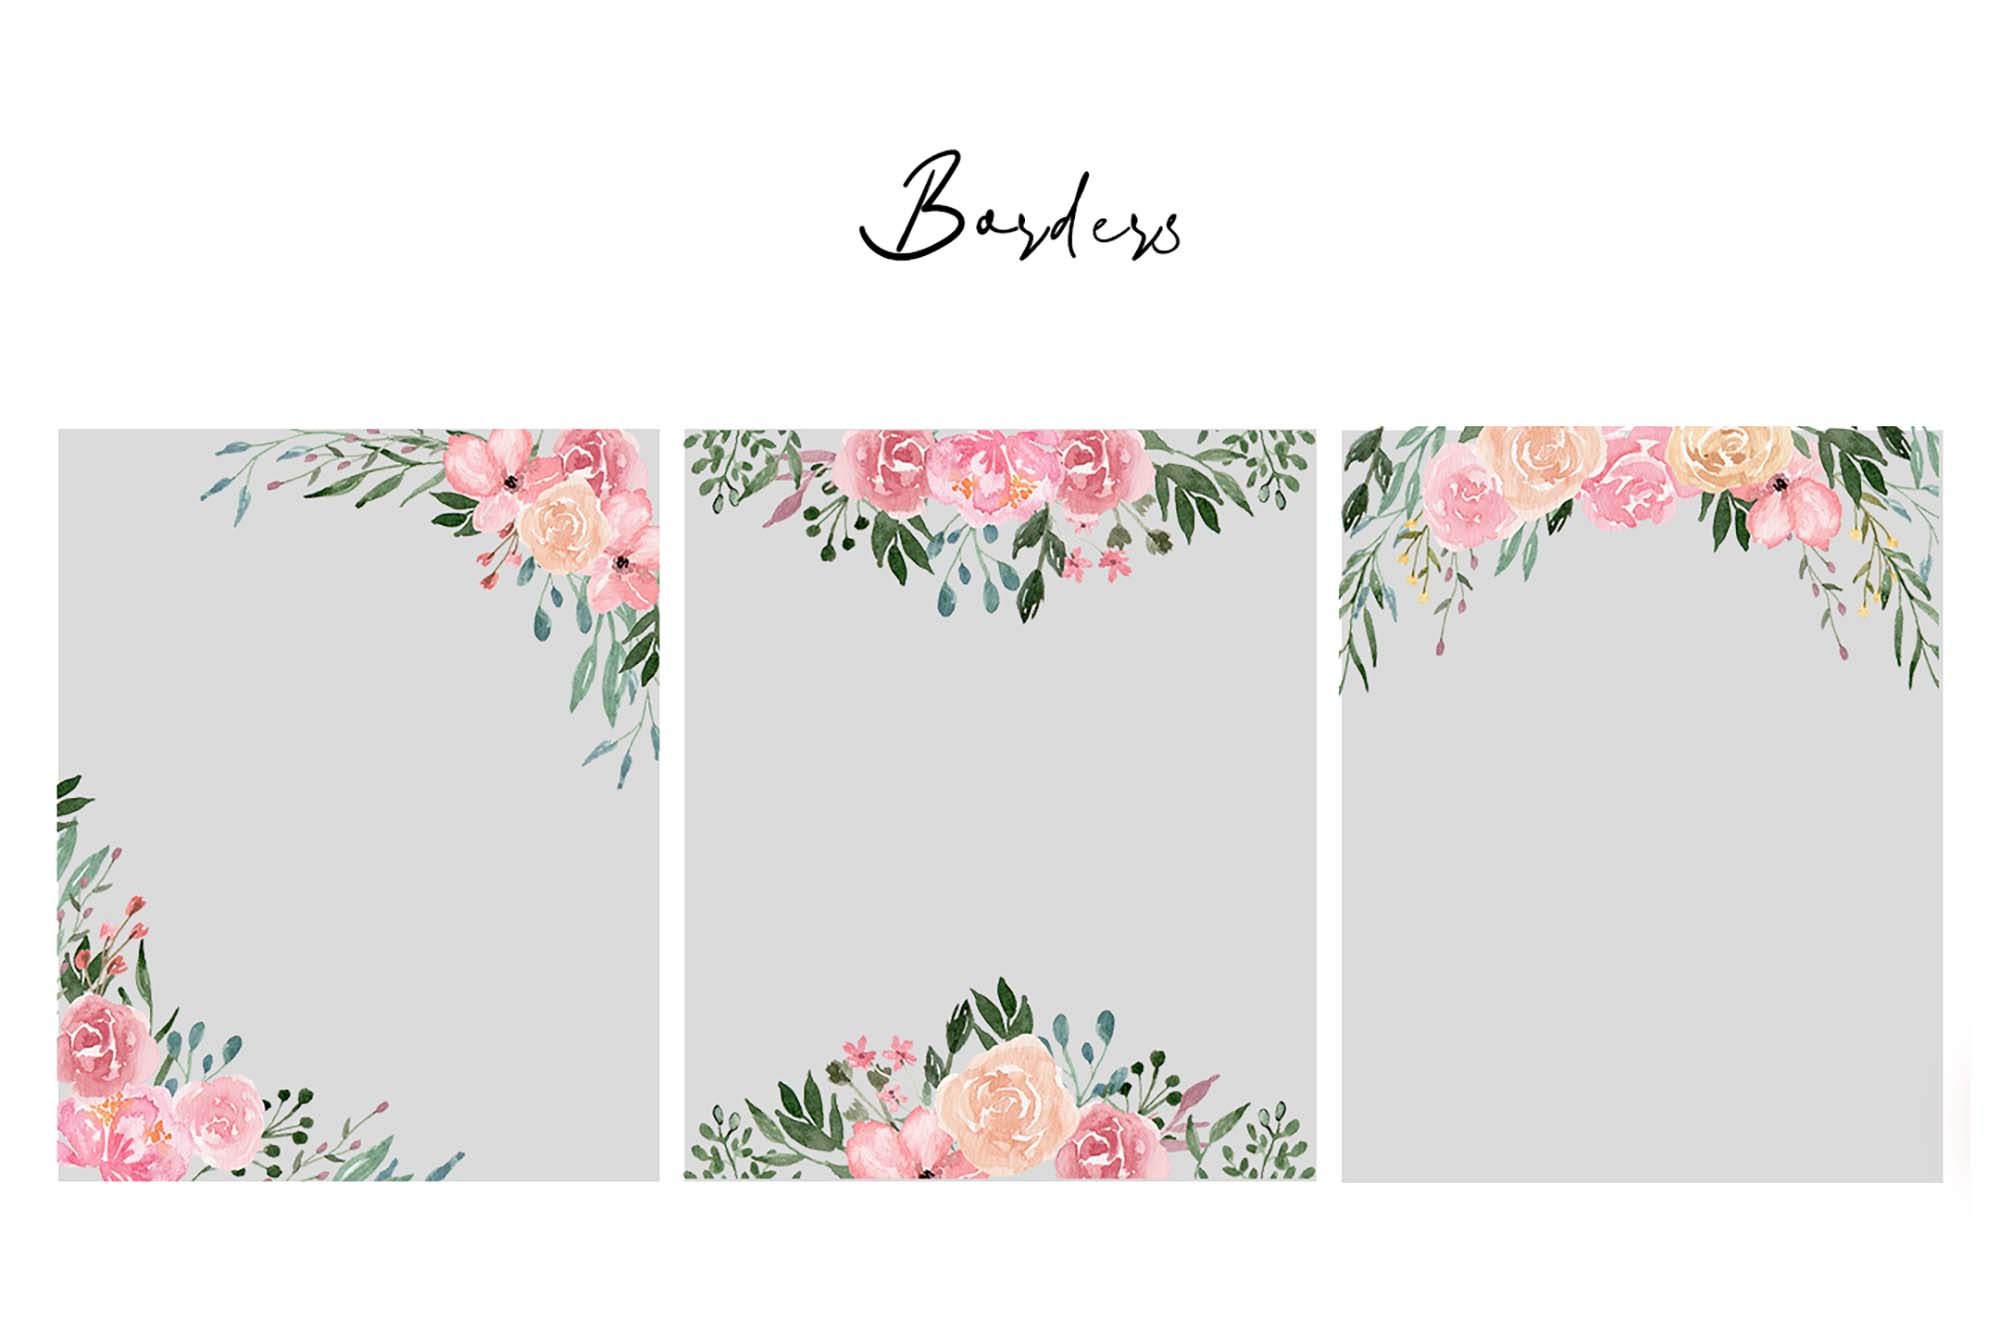 Dusty Blooms Watercolor Graphic Illustrations 1